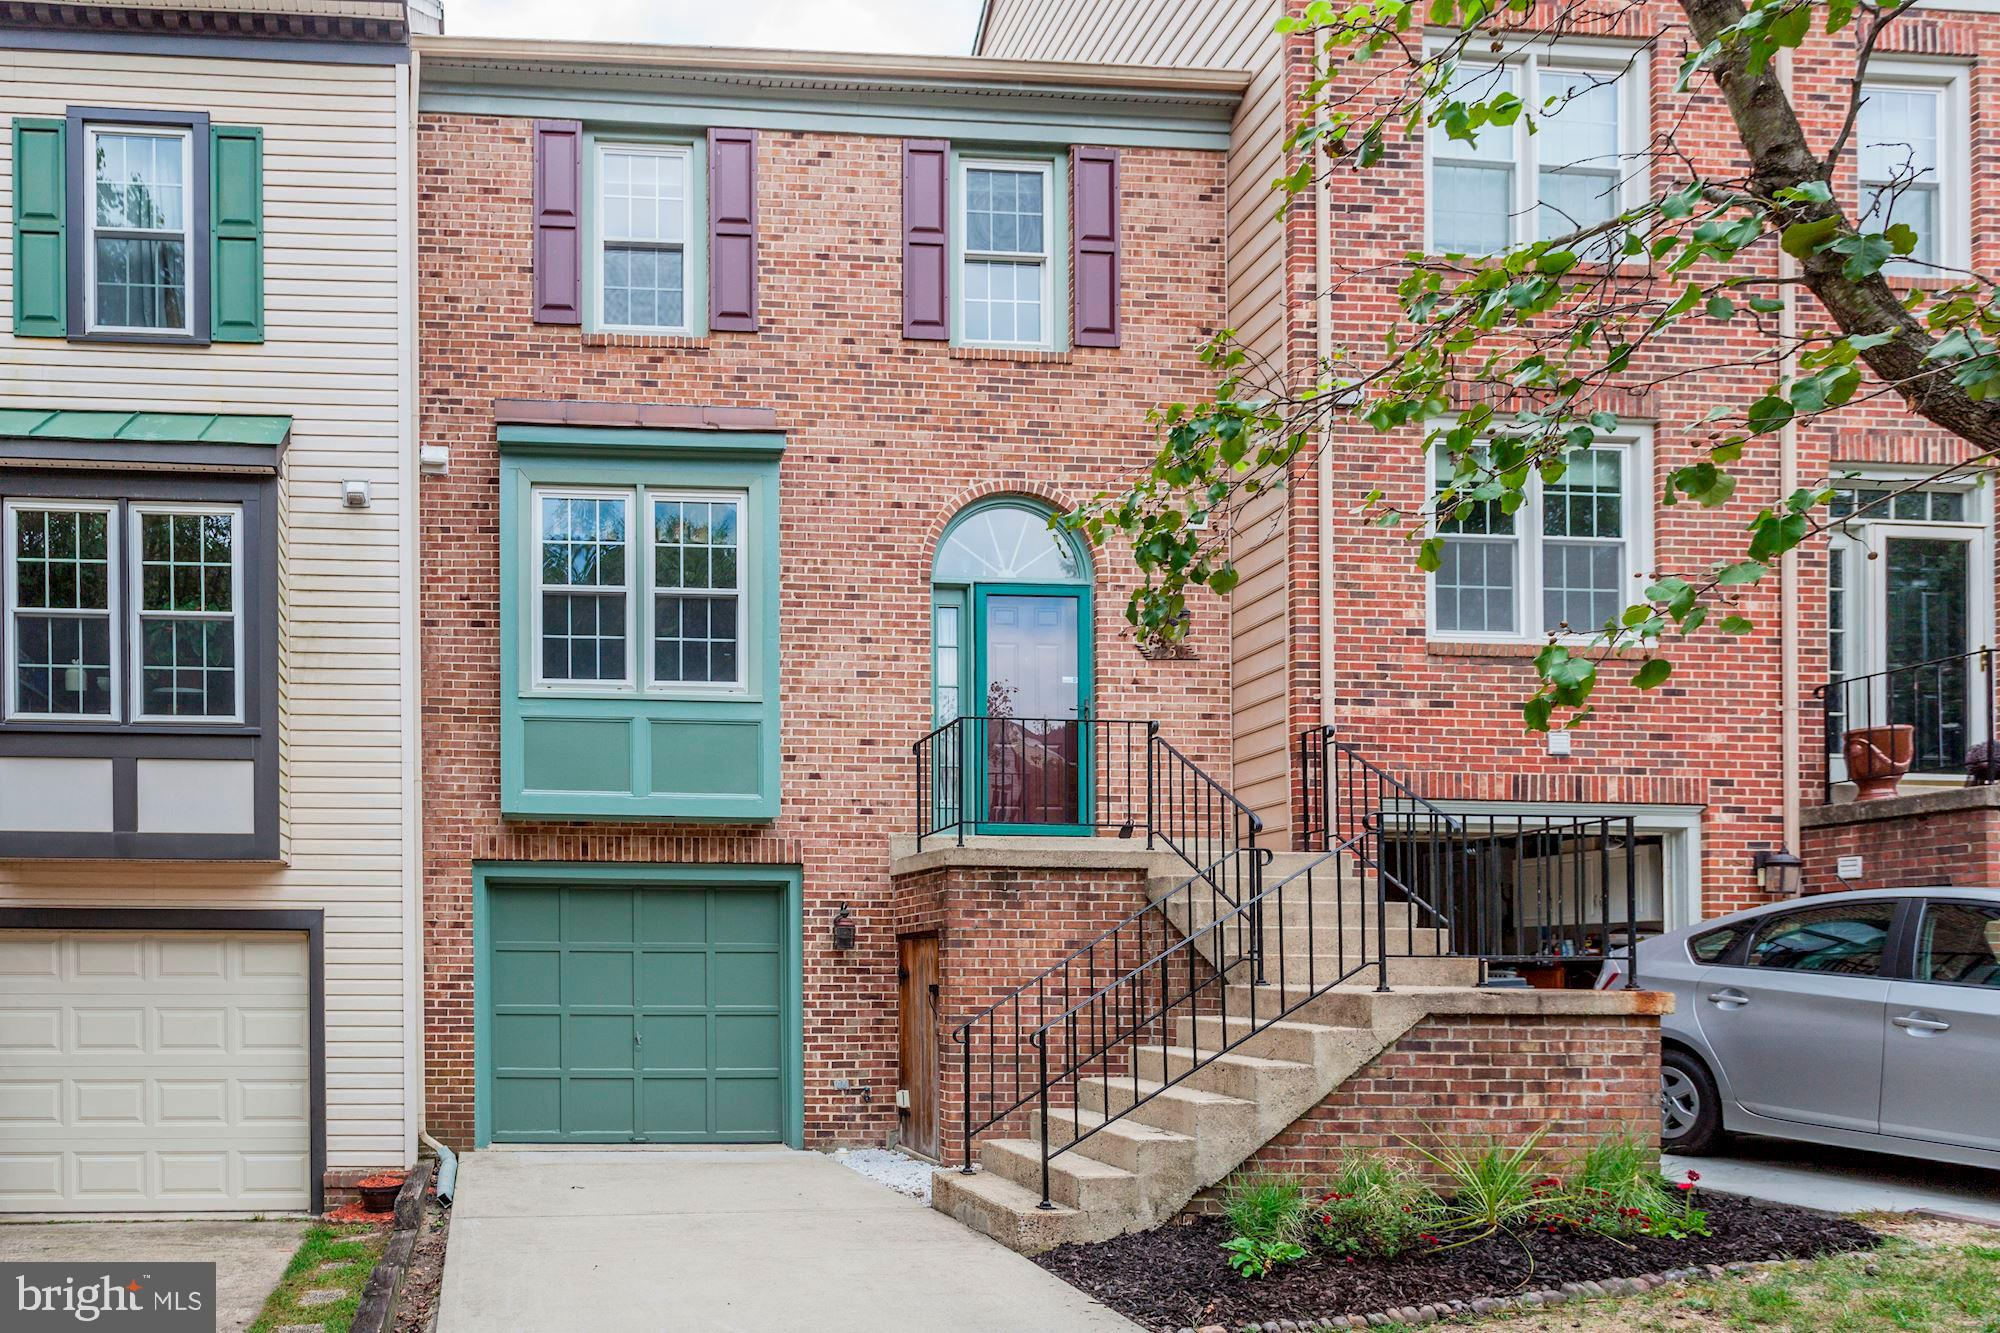 Brick three level garage townhome backing to woods.  You cant beat this location just off the parkway near metro stop, metro rail , trails and parks.  One car garage with two more spaces in the extra wide driveway.  Loads of natural light & vaulted ceilings in this open floorplan home. Remodeled kitchen with granite,undercounter lighting, undermount sink and tile floor.  Step down living room with marble surround fireplace & access to deck. Dining room with new brush nickle chandelier and room for a hutch. Master suite with cathedral ceilings and his and her closet with organizers .  Luxury master bath with separate tub and shower, tile surround and his and her sinks. Full walk out basement with double windows and SGD, brick fireplace, separate finished laundry room & half bath.  The front yard is mowed by the association.  The back yard is so little maintenance with a concrete covered patio and brick patio facing the trees. Dont miss the great storage area under the front stoop its larger than it looks.